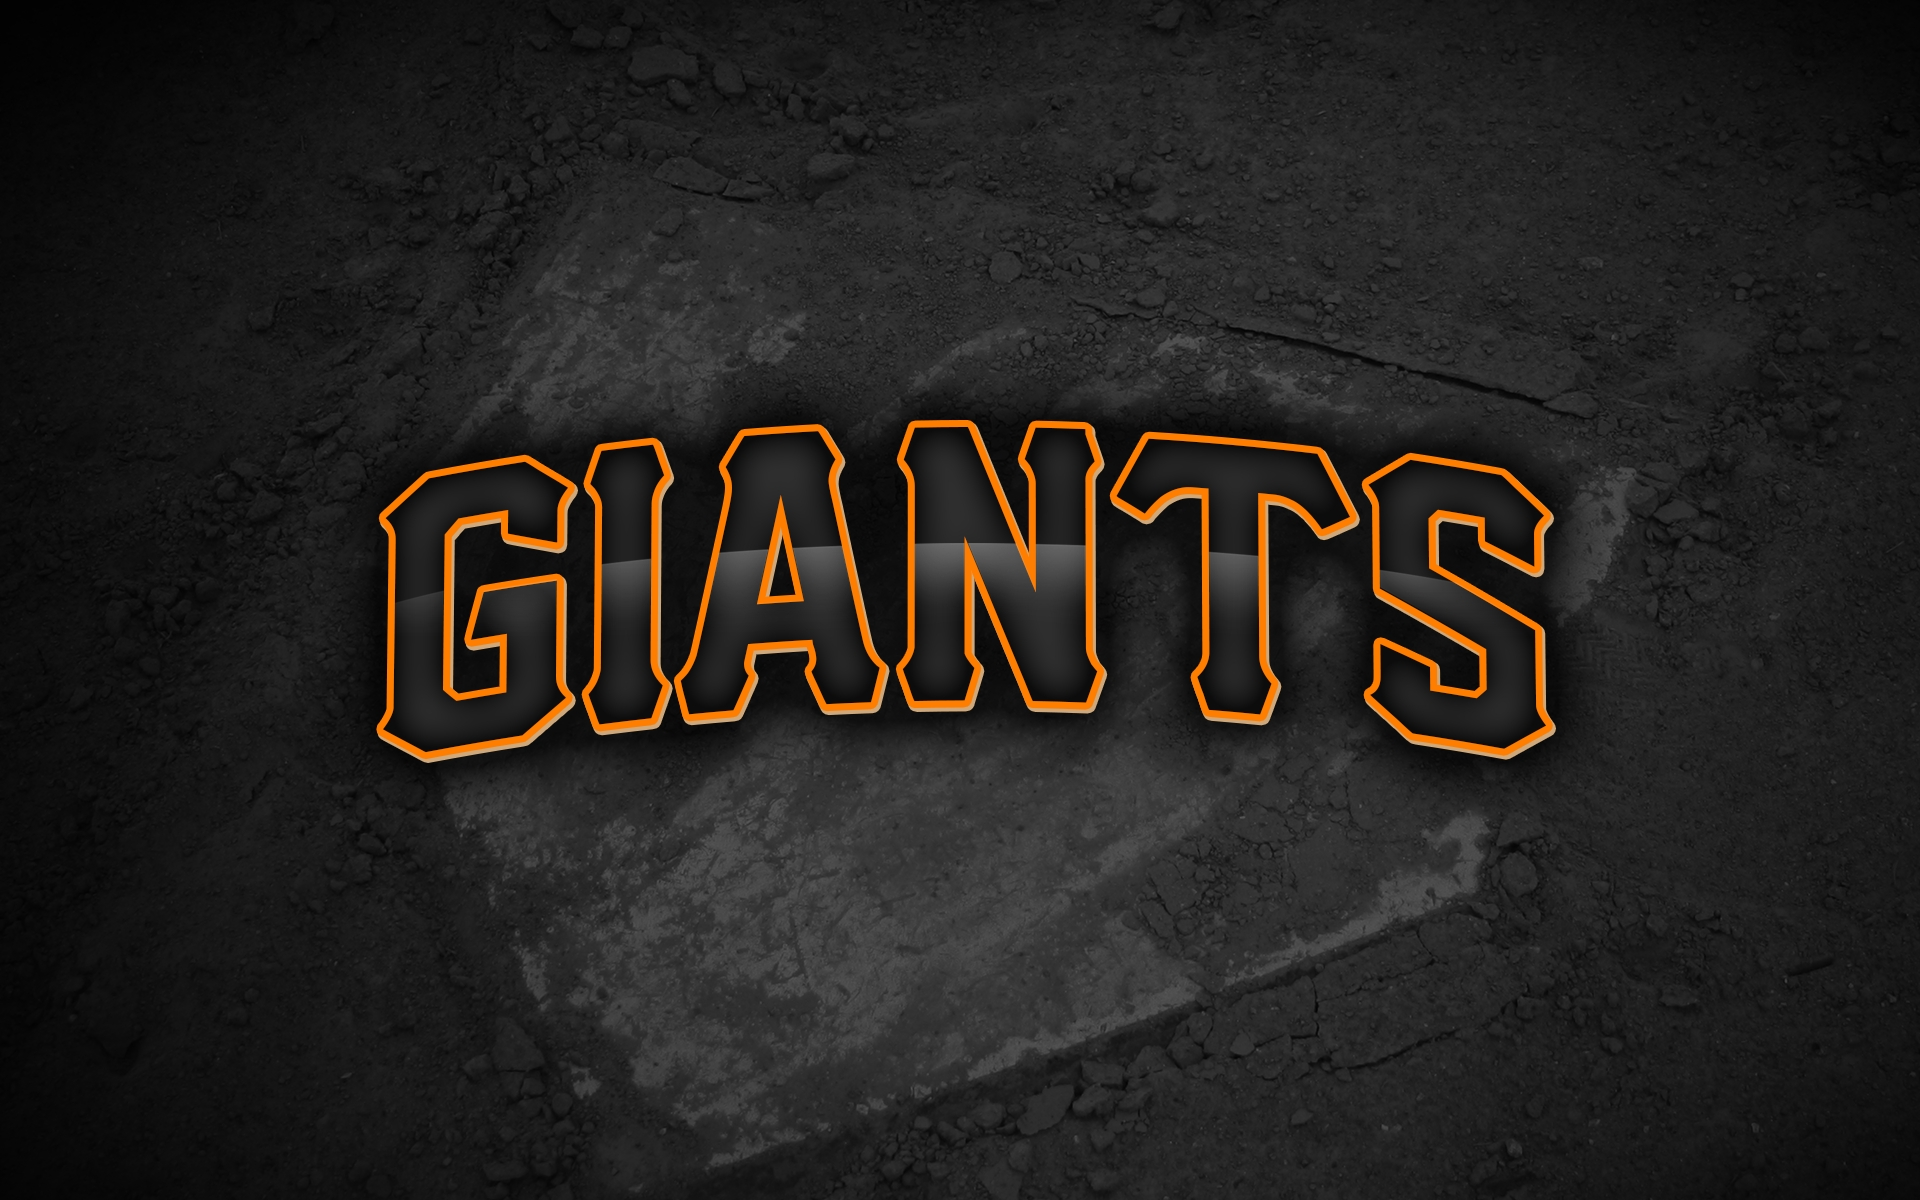 sf giants backgrounds | pixelstalk